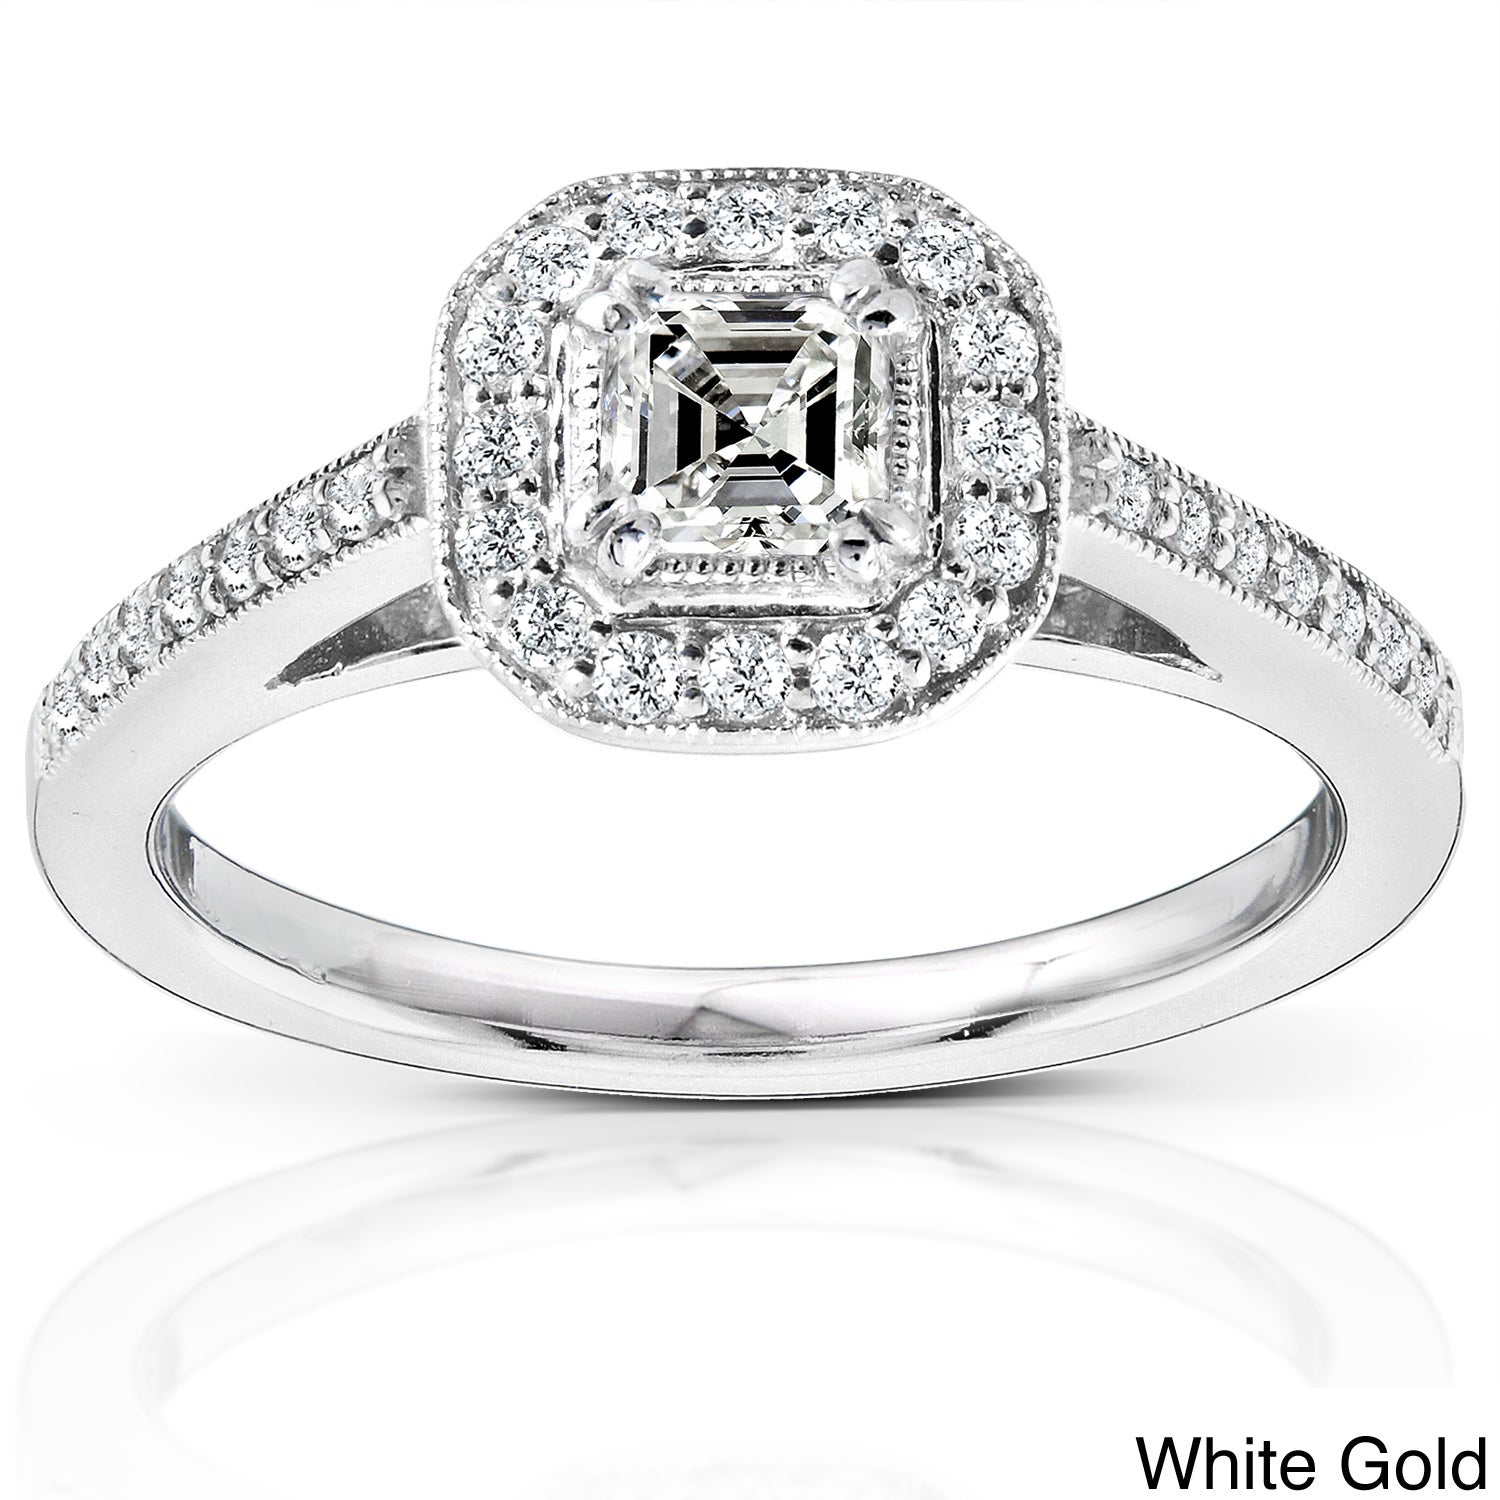 Eziba Collection 14k Gold 1/2ct TDW Asscher Halo Diamond Ring at Sears.com